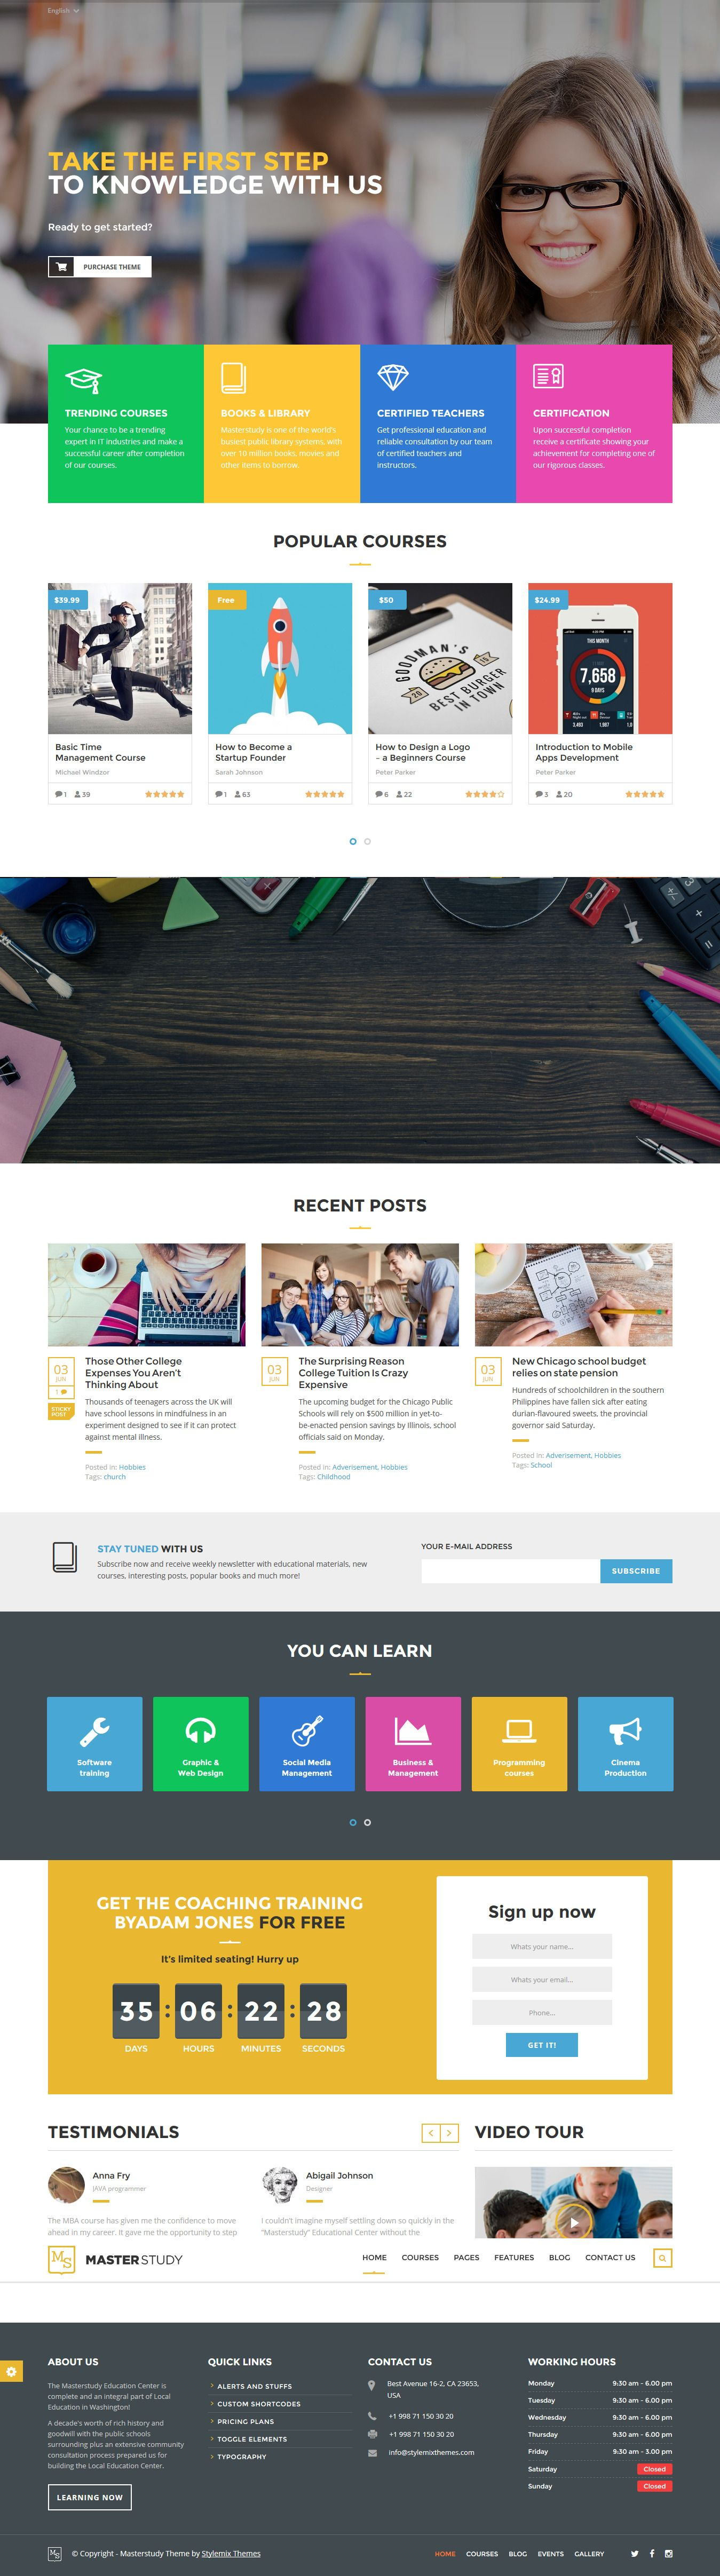 Masterstudy - Education WordPress Theme for Learning, Training and ...